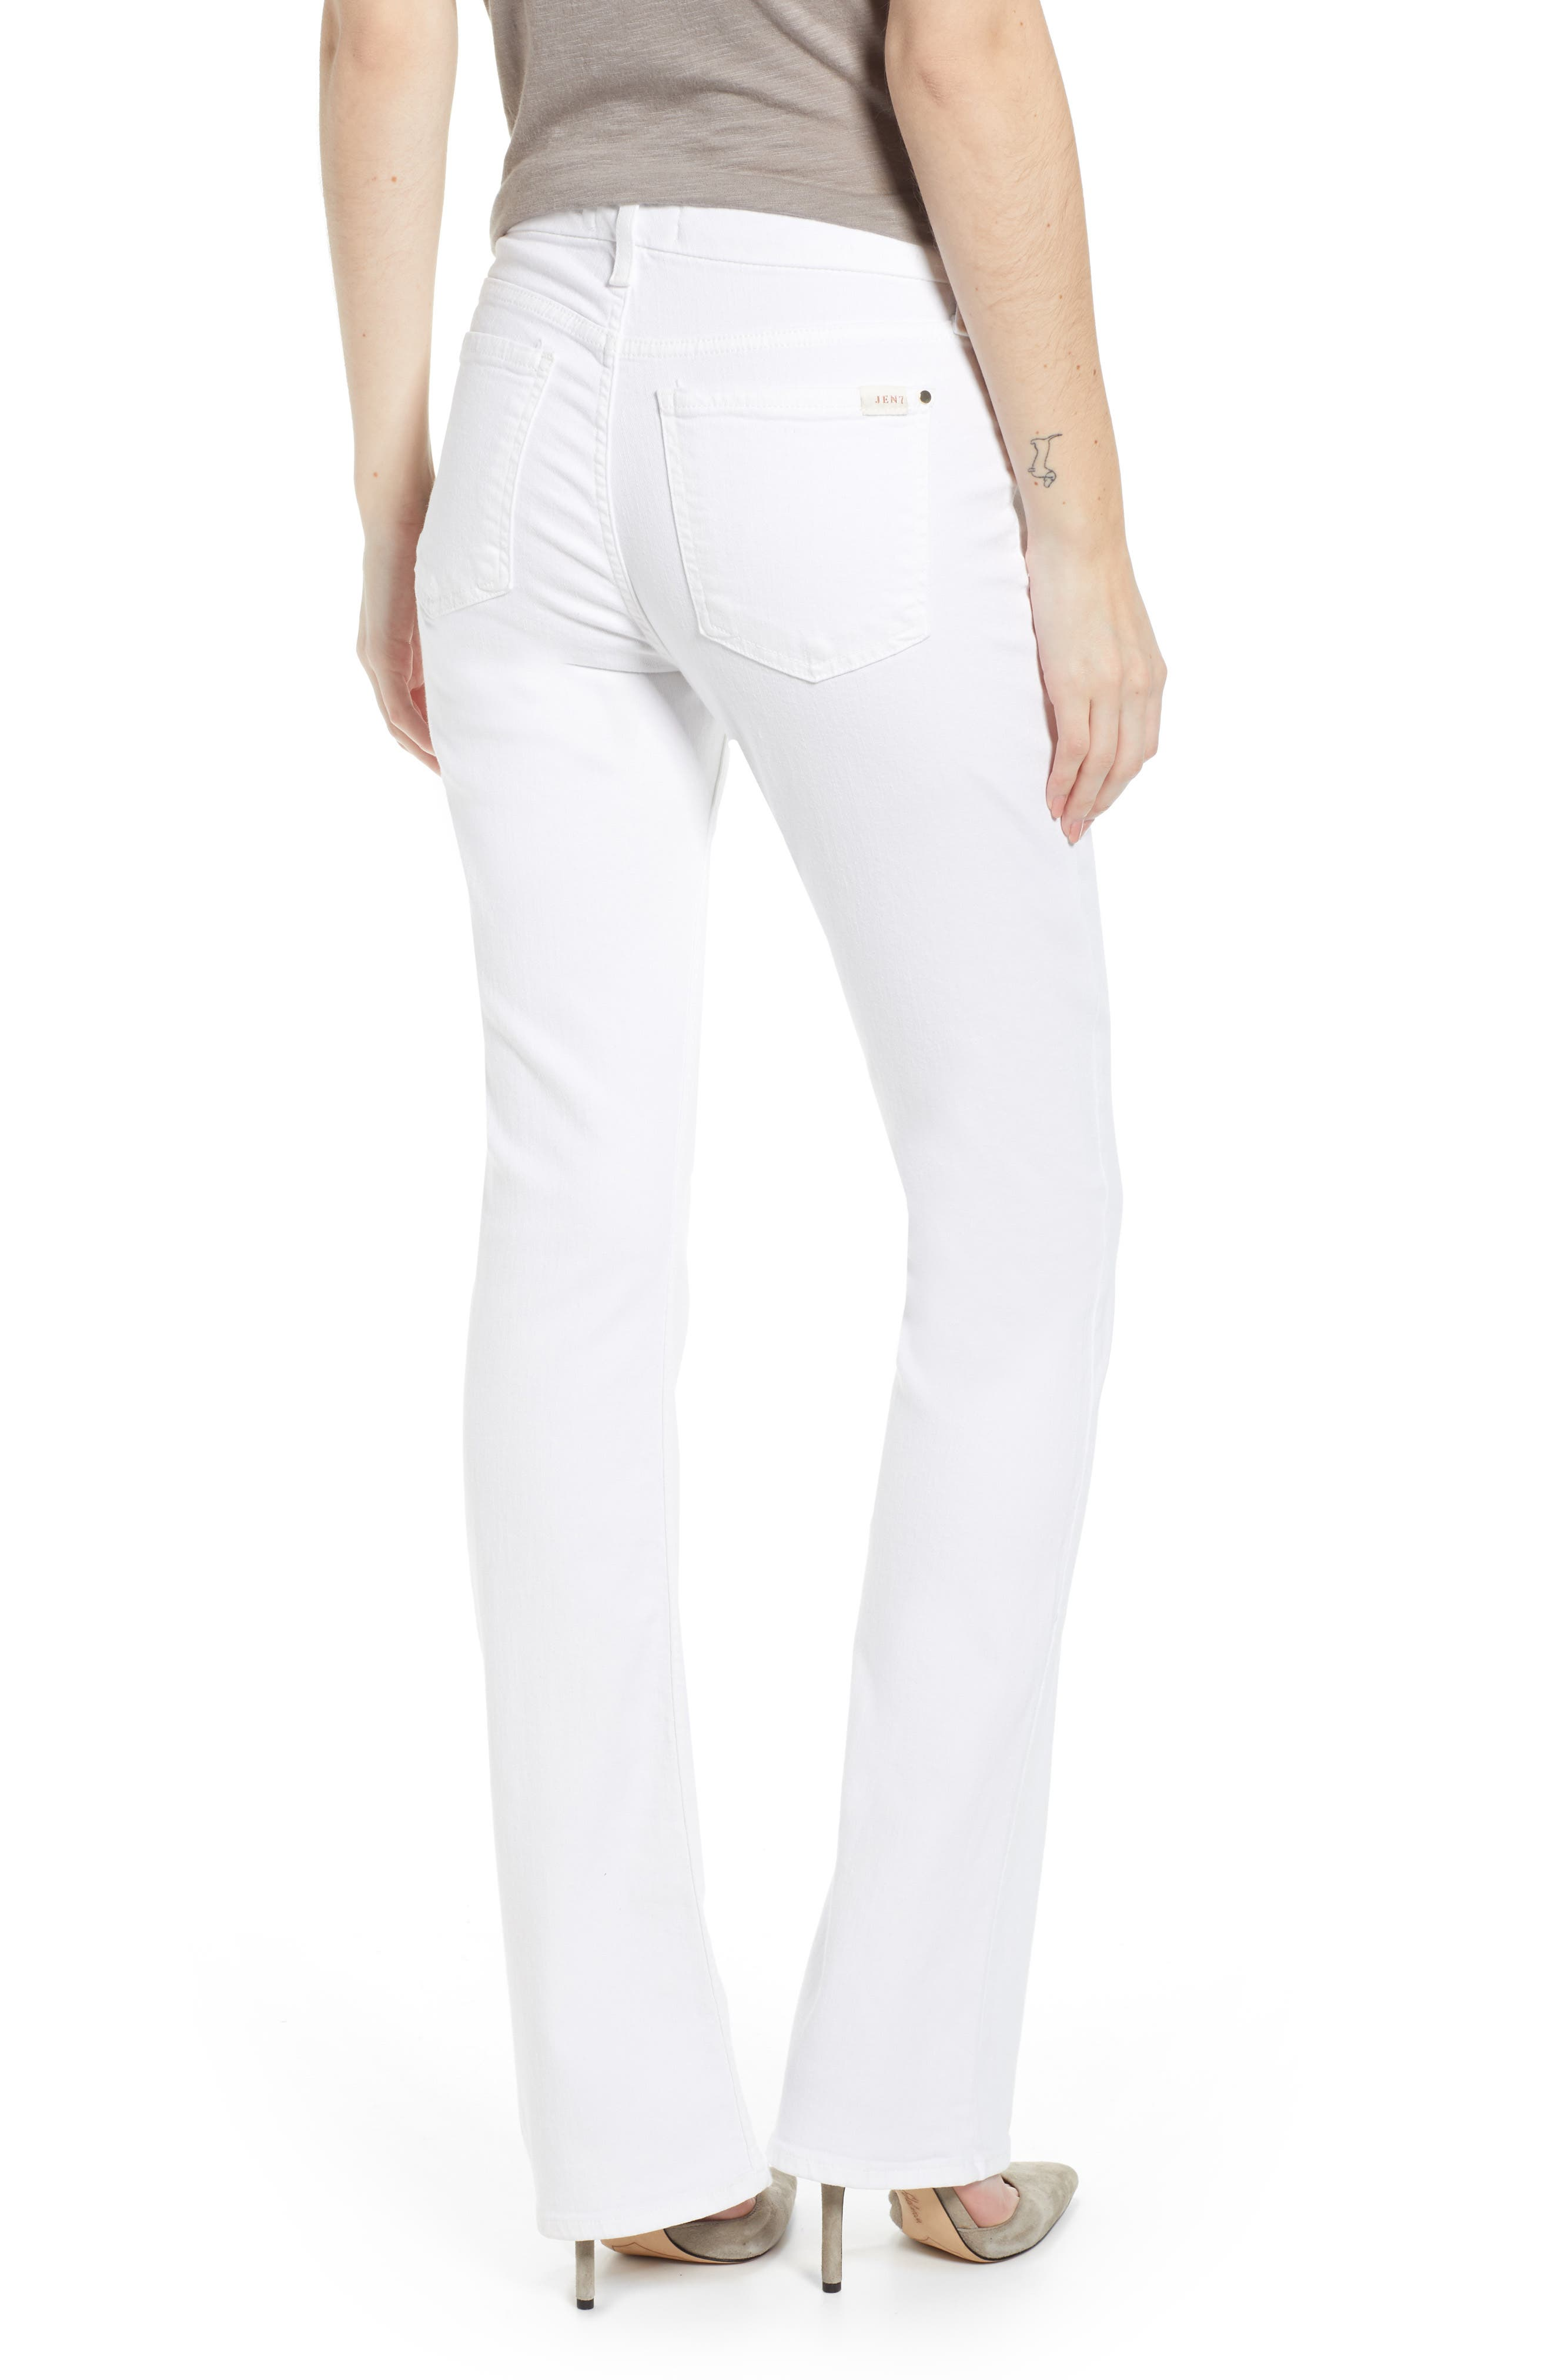 JEN7 BY 7 FOR ALL MANKIND, Slim Bootcut Jeans, Alternate thumbnail 2, color, WHITE